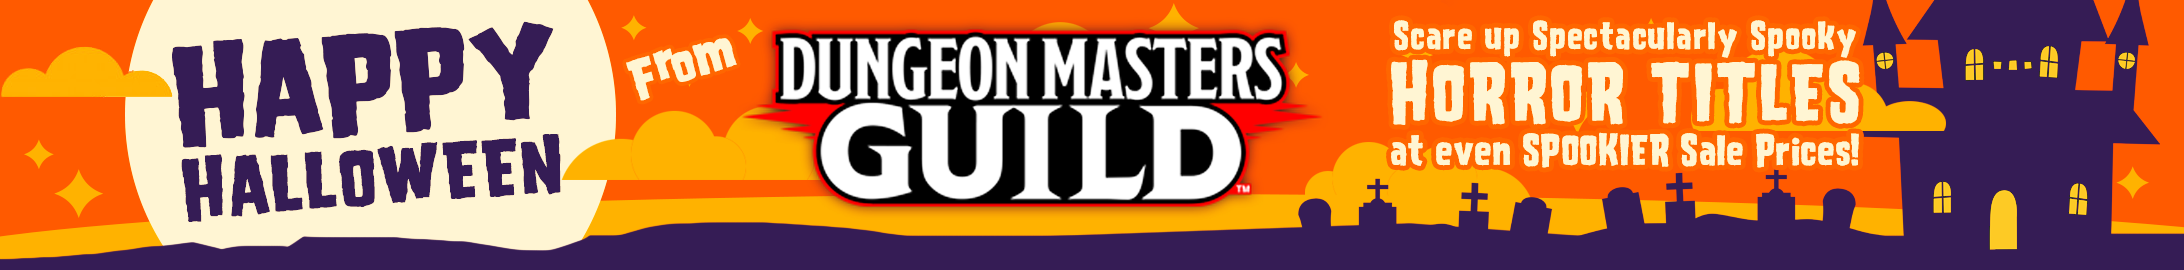 Spooky sale prices @ Dungeon Masters Guild